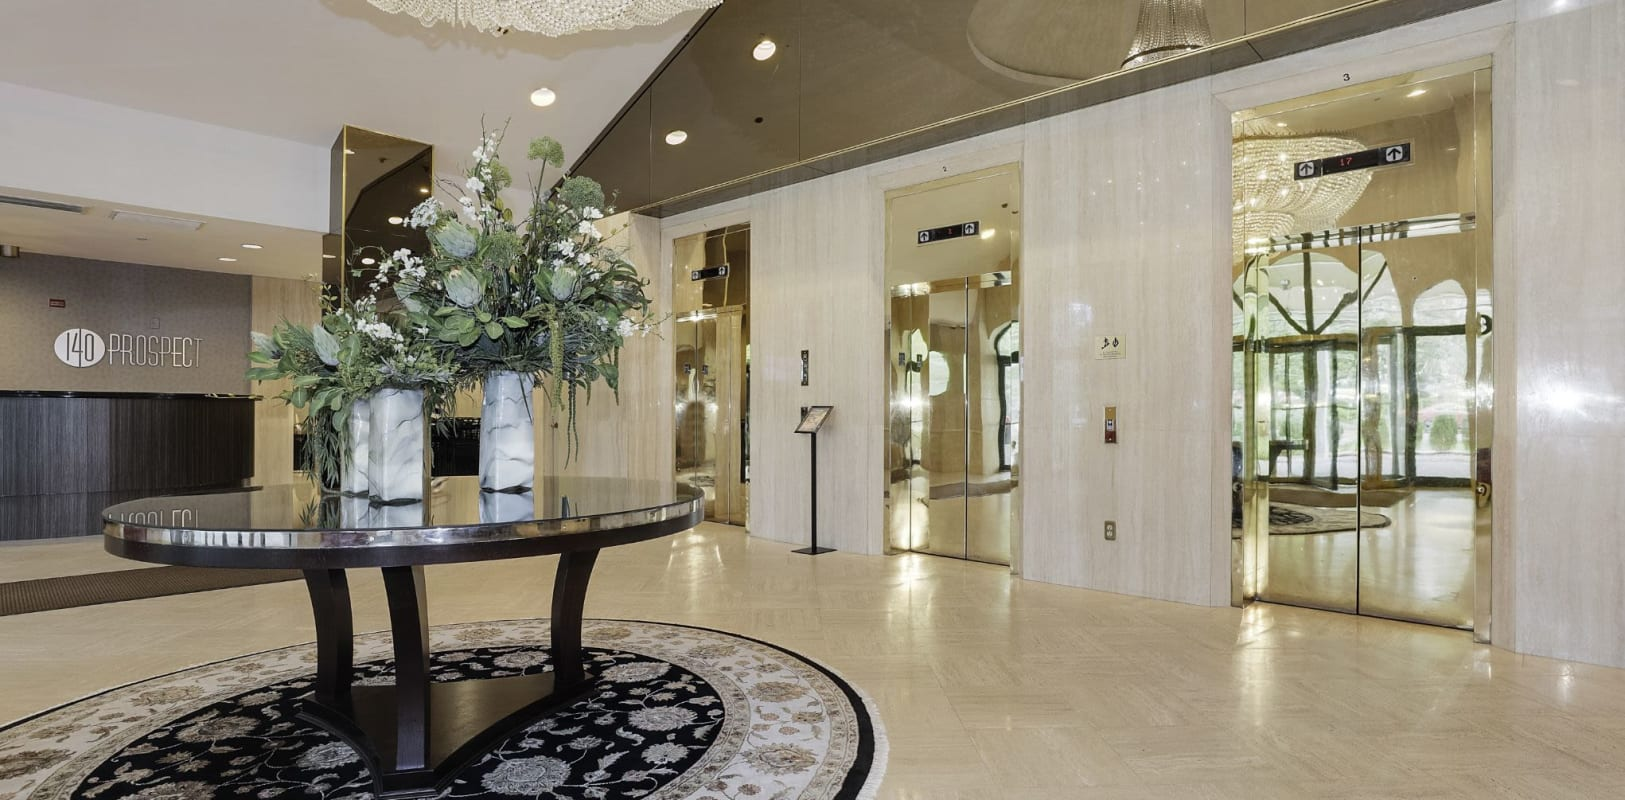 Lobby area at 140 Prospect in Hackensack, New Jersey